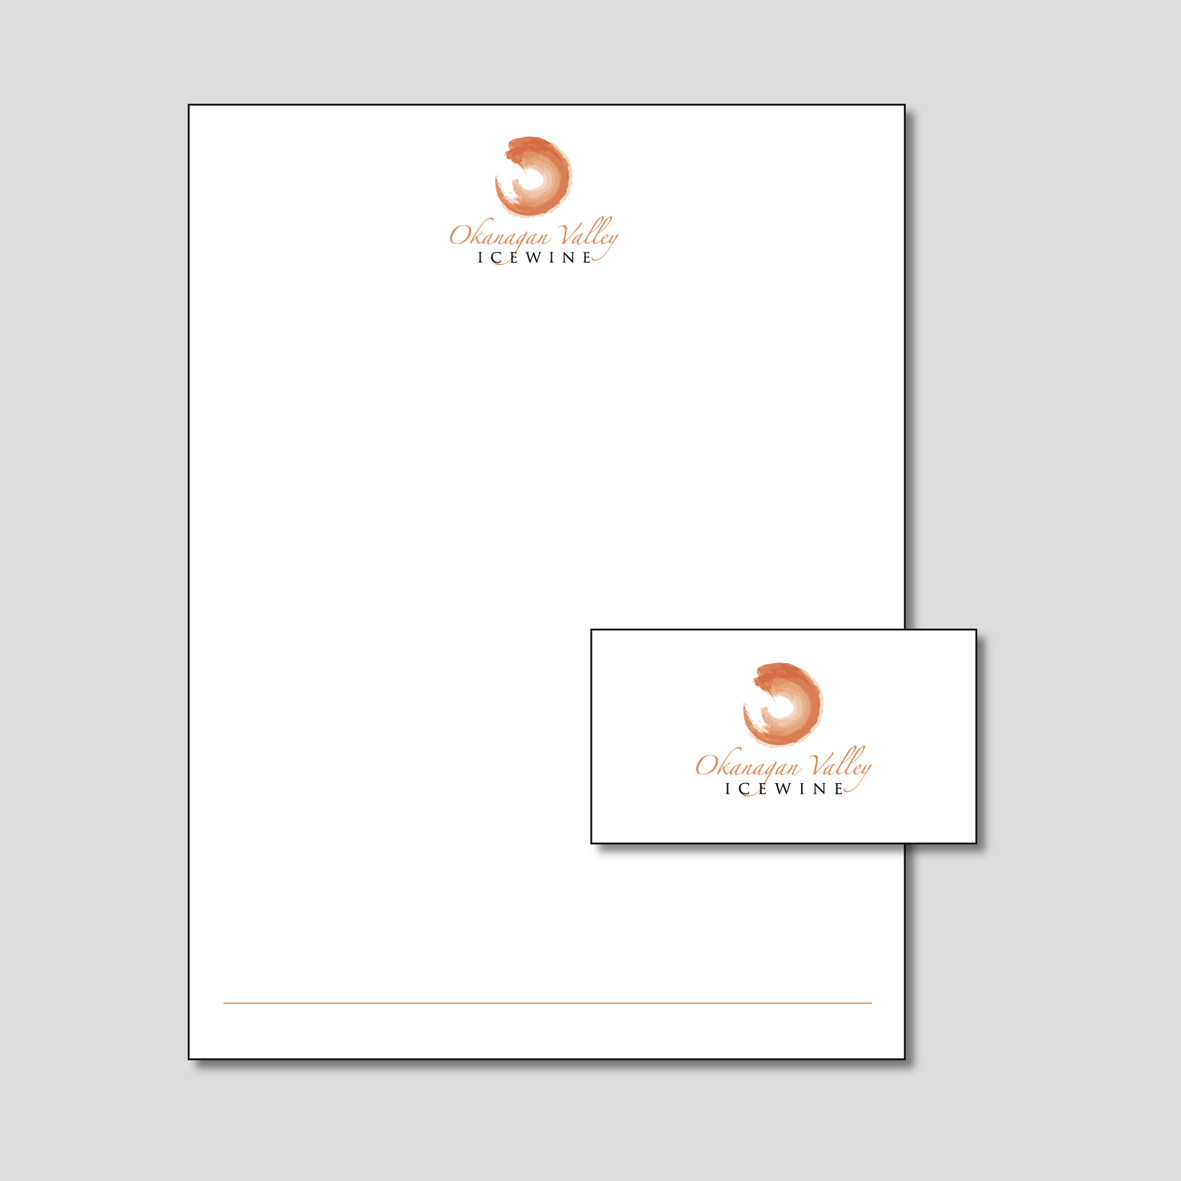 International Export Import Business And Immigration Fraud Logo Design For Wine Export Company Hiretheworld